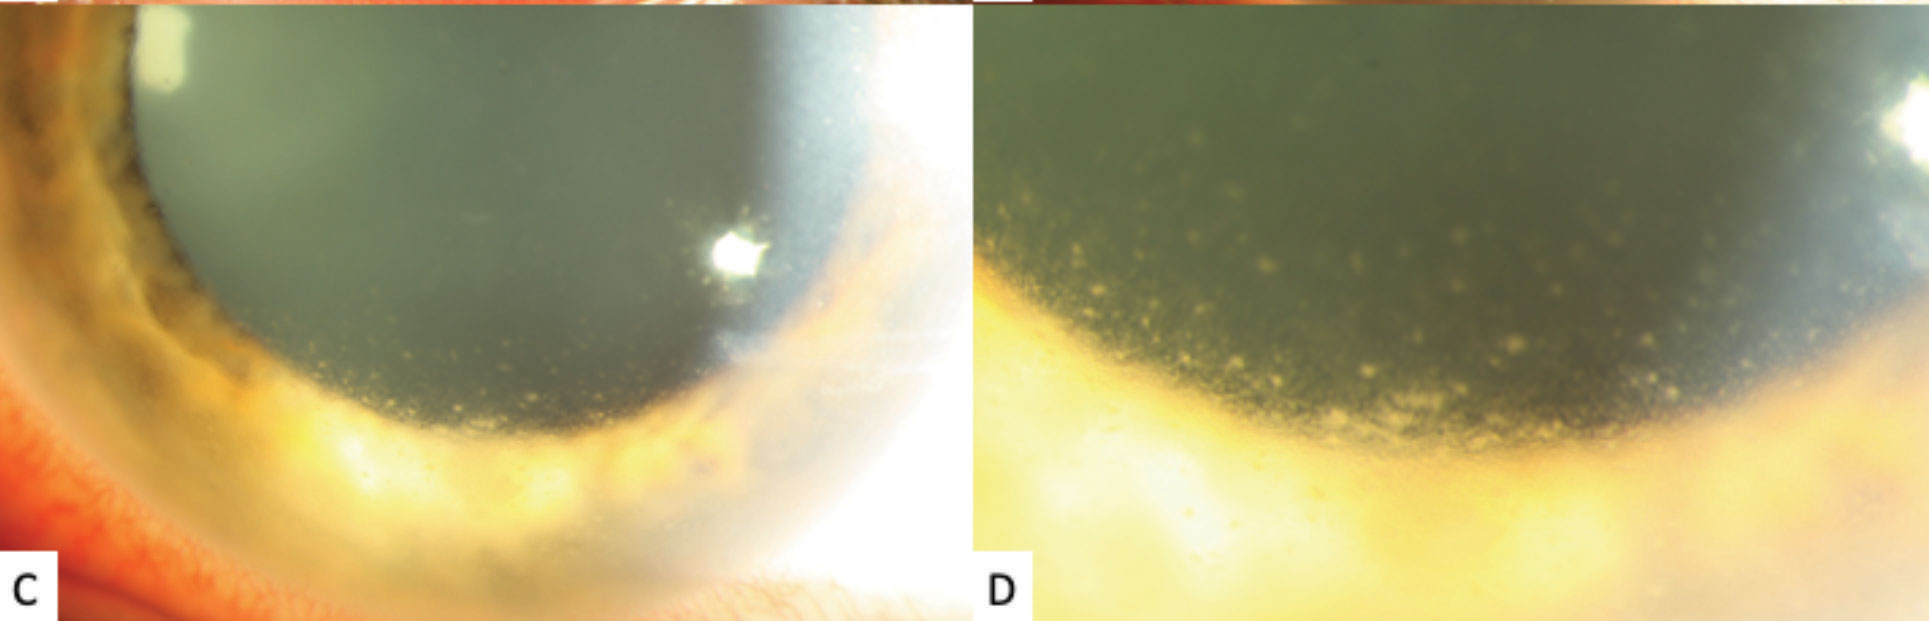 High-magnification slit lamp photographs of the left eye showing inferior stellate keratic precipitates on the lower half of the cornea.